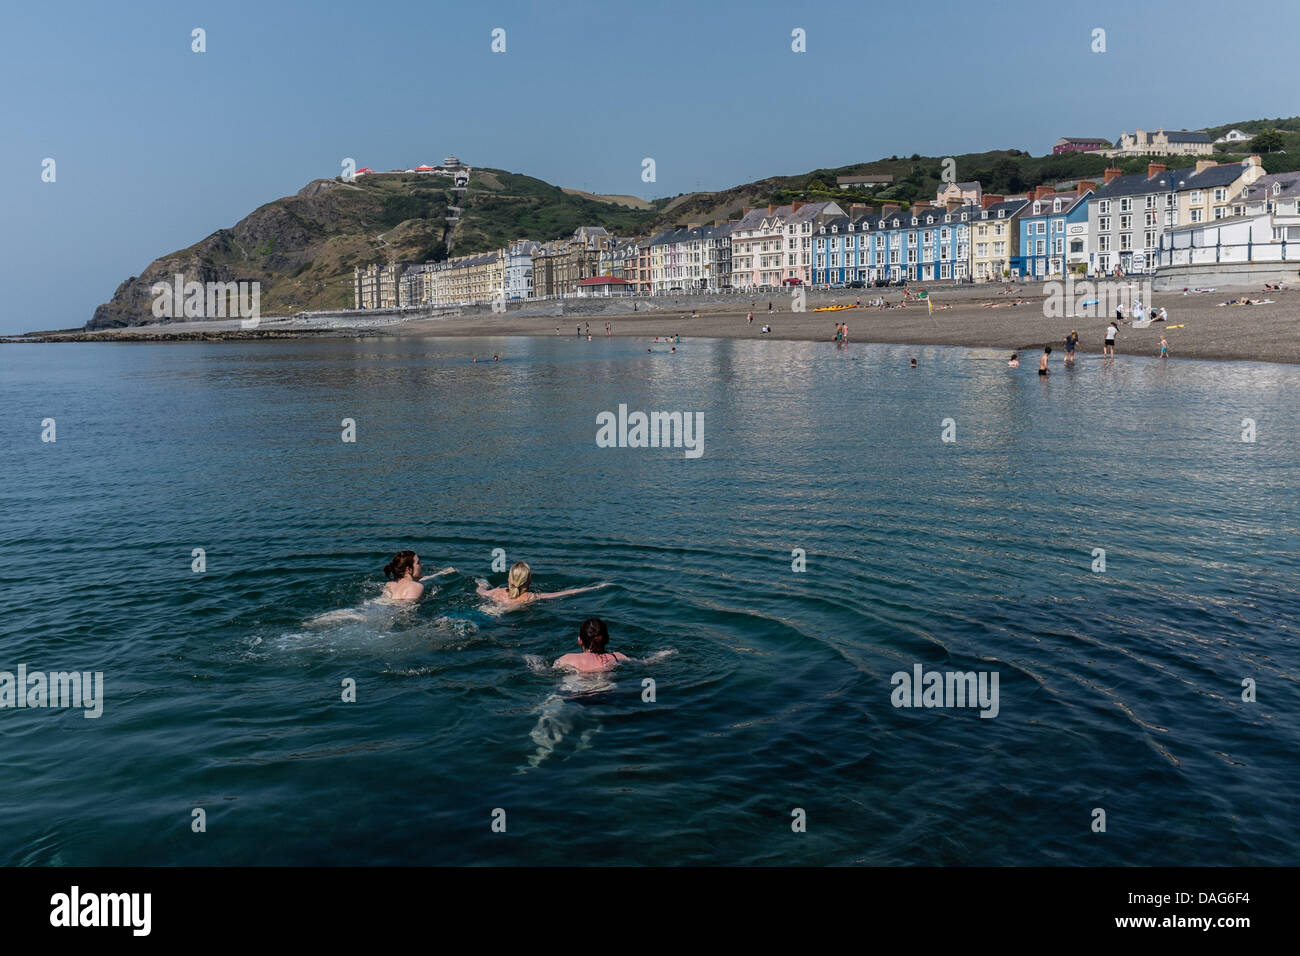 Aberystwyth Wales UK, Friday 12 July 2013  As temperatures climb into the mid 20's Celsius  (low 70's Fahrenheit), Stock Photo